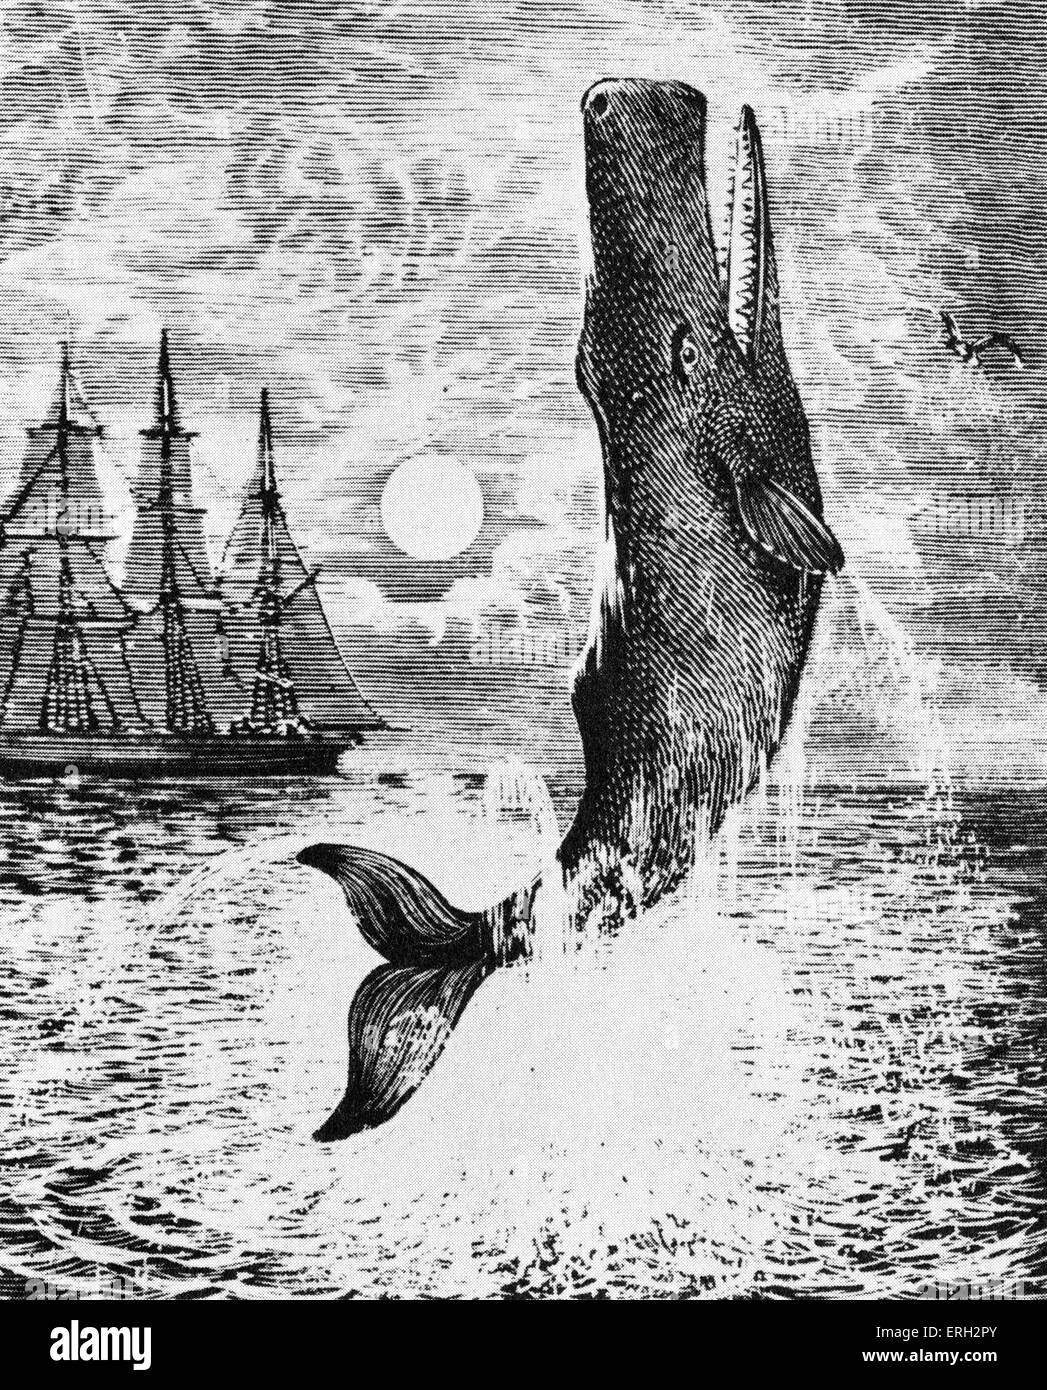 The use of symbolism in herman melvilles novel moby dick